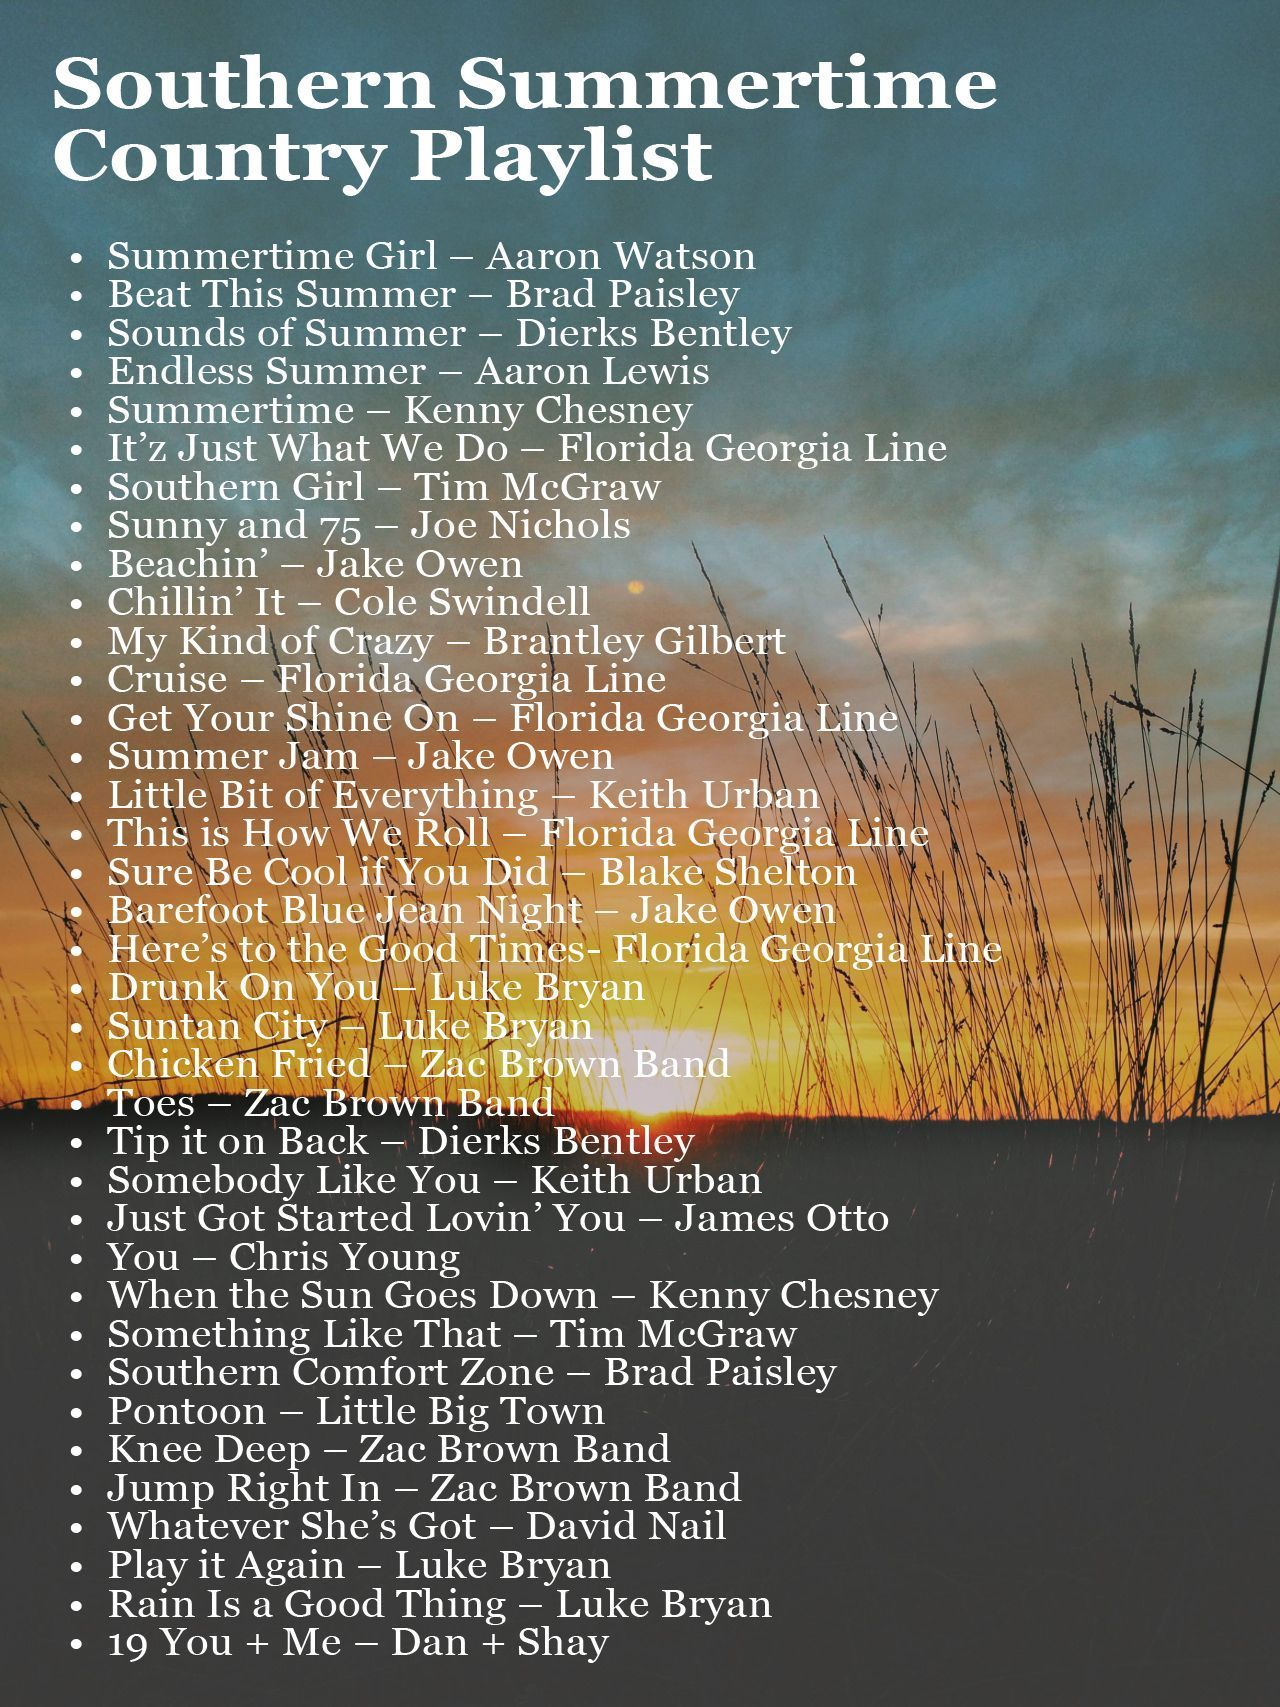 Online country playlist